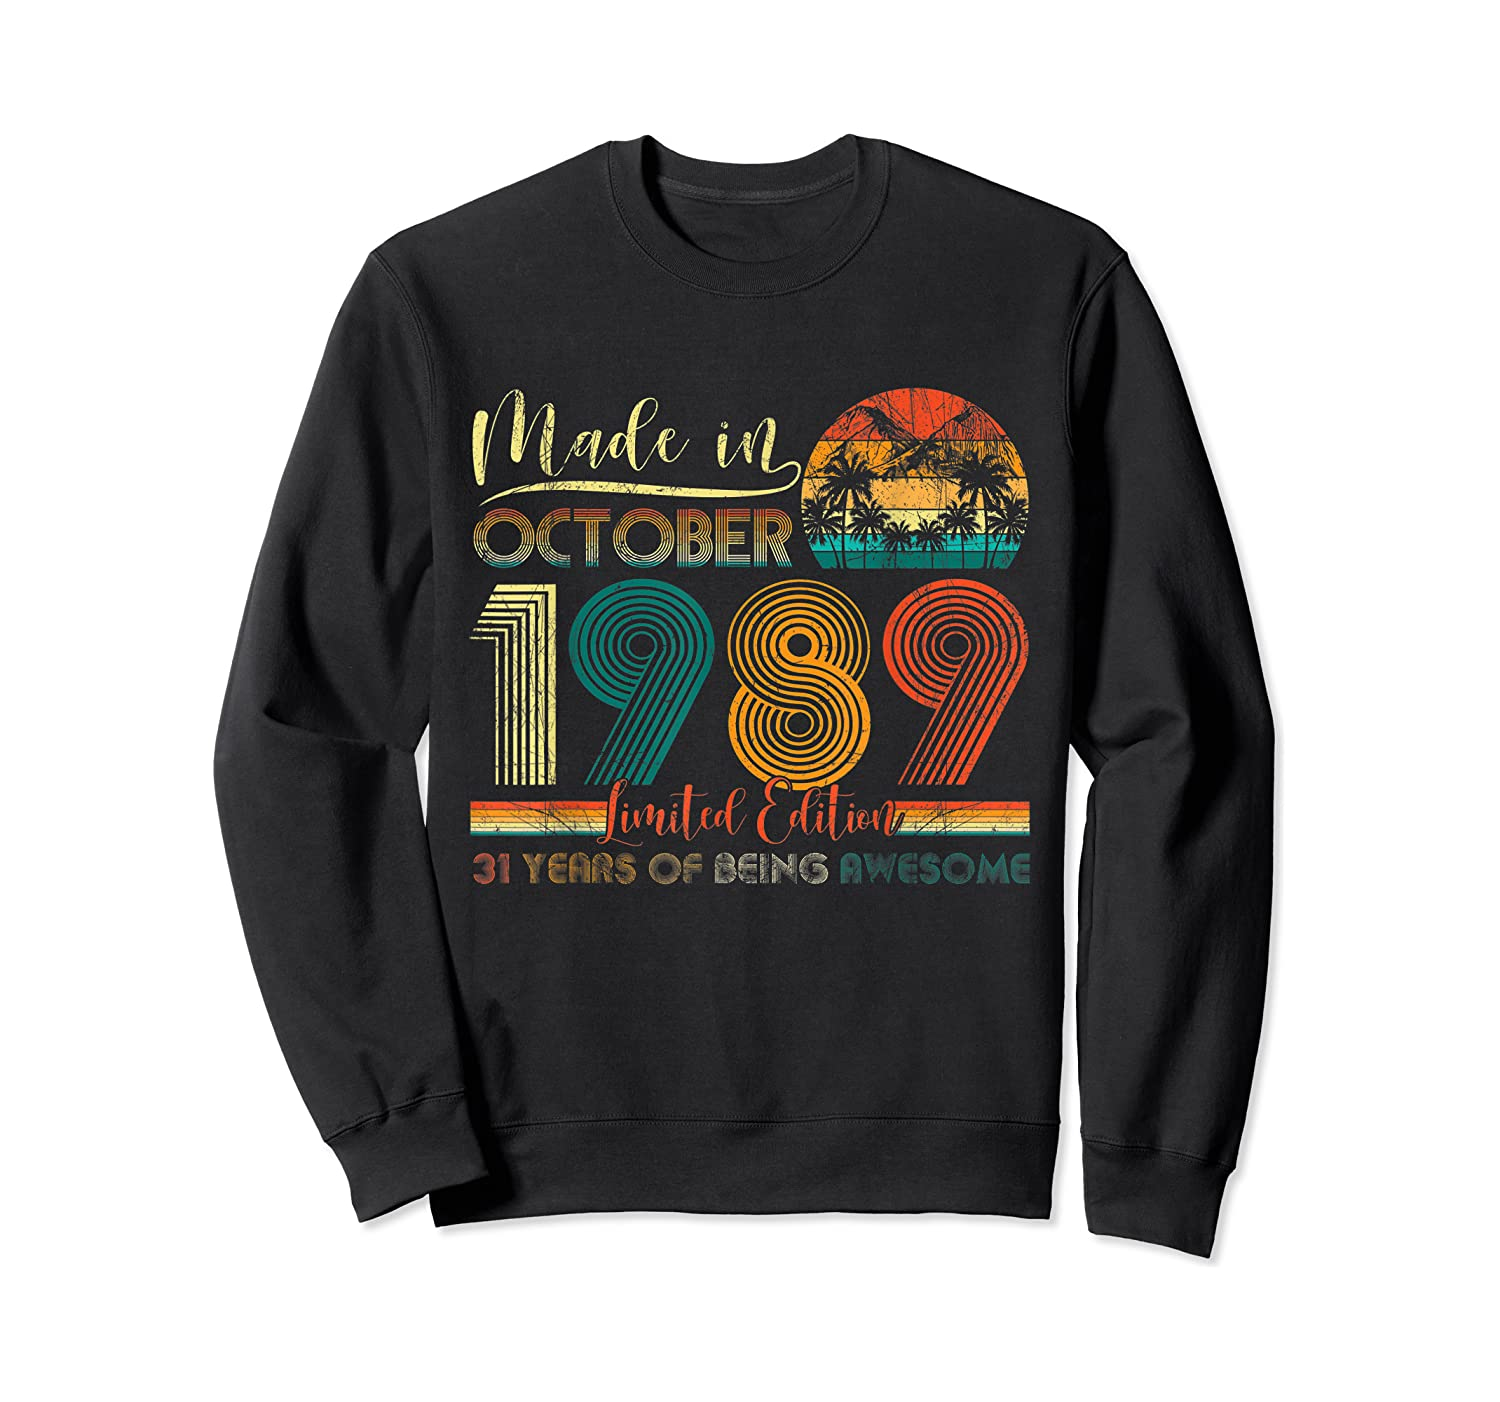 Classic October 1989 Shirt 31st Birthday Gifts 31 Years Old T-shirt Crewneck Sweater